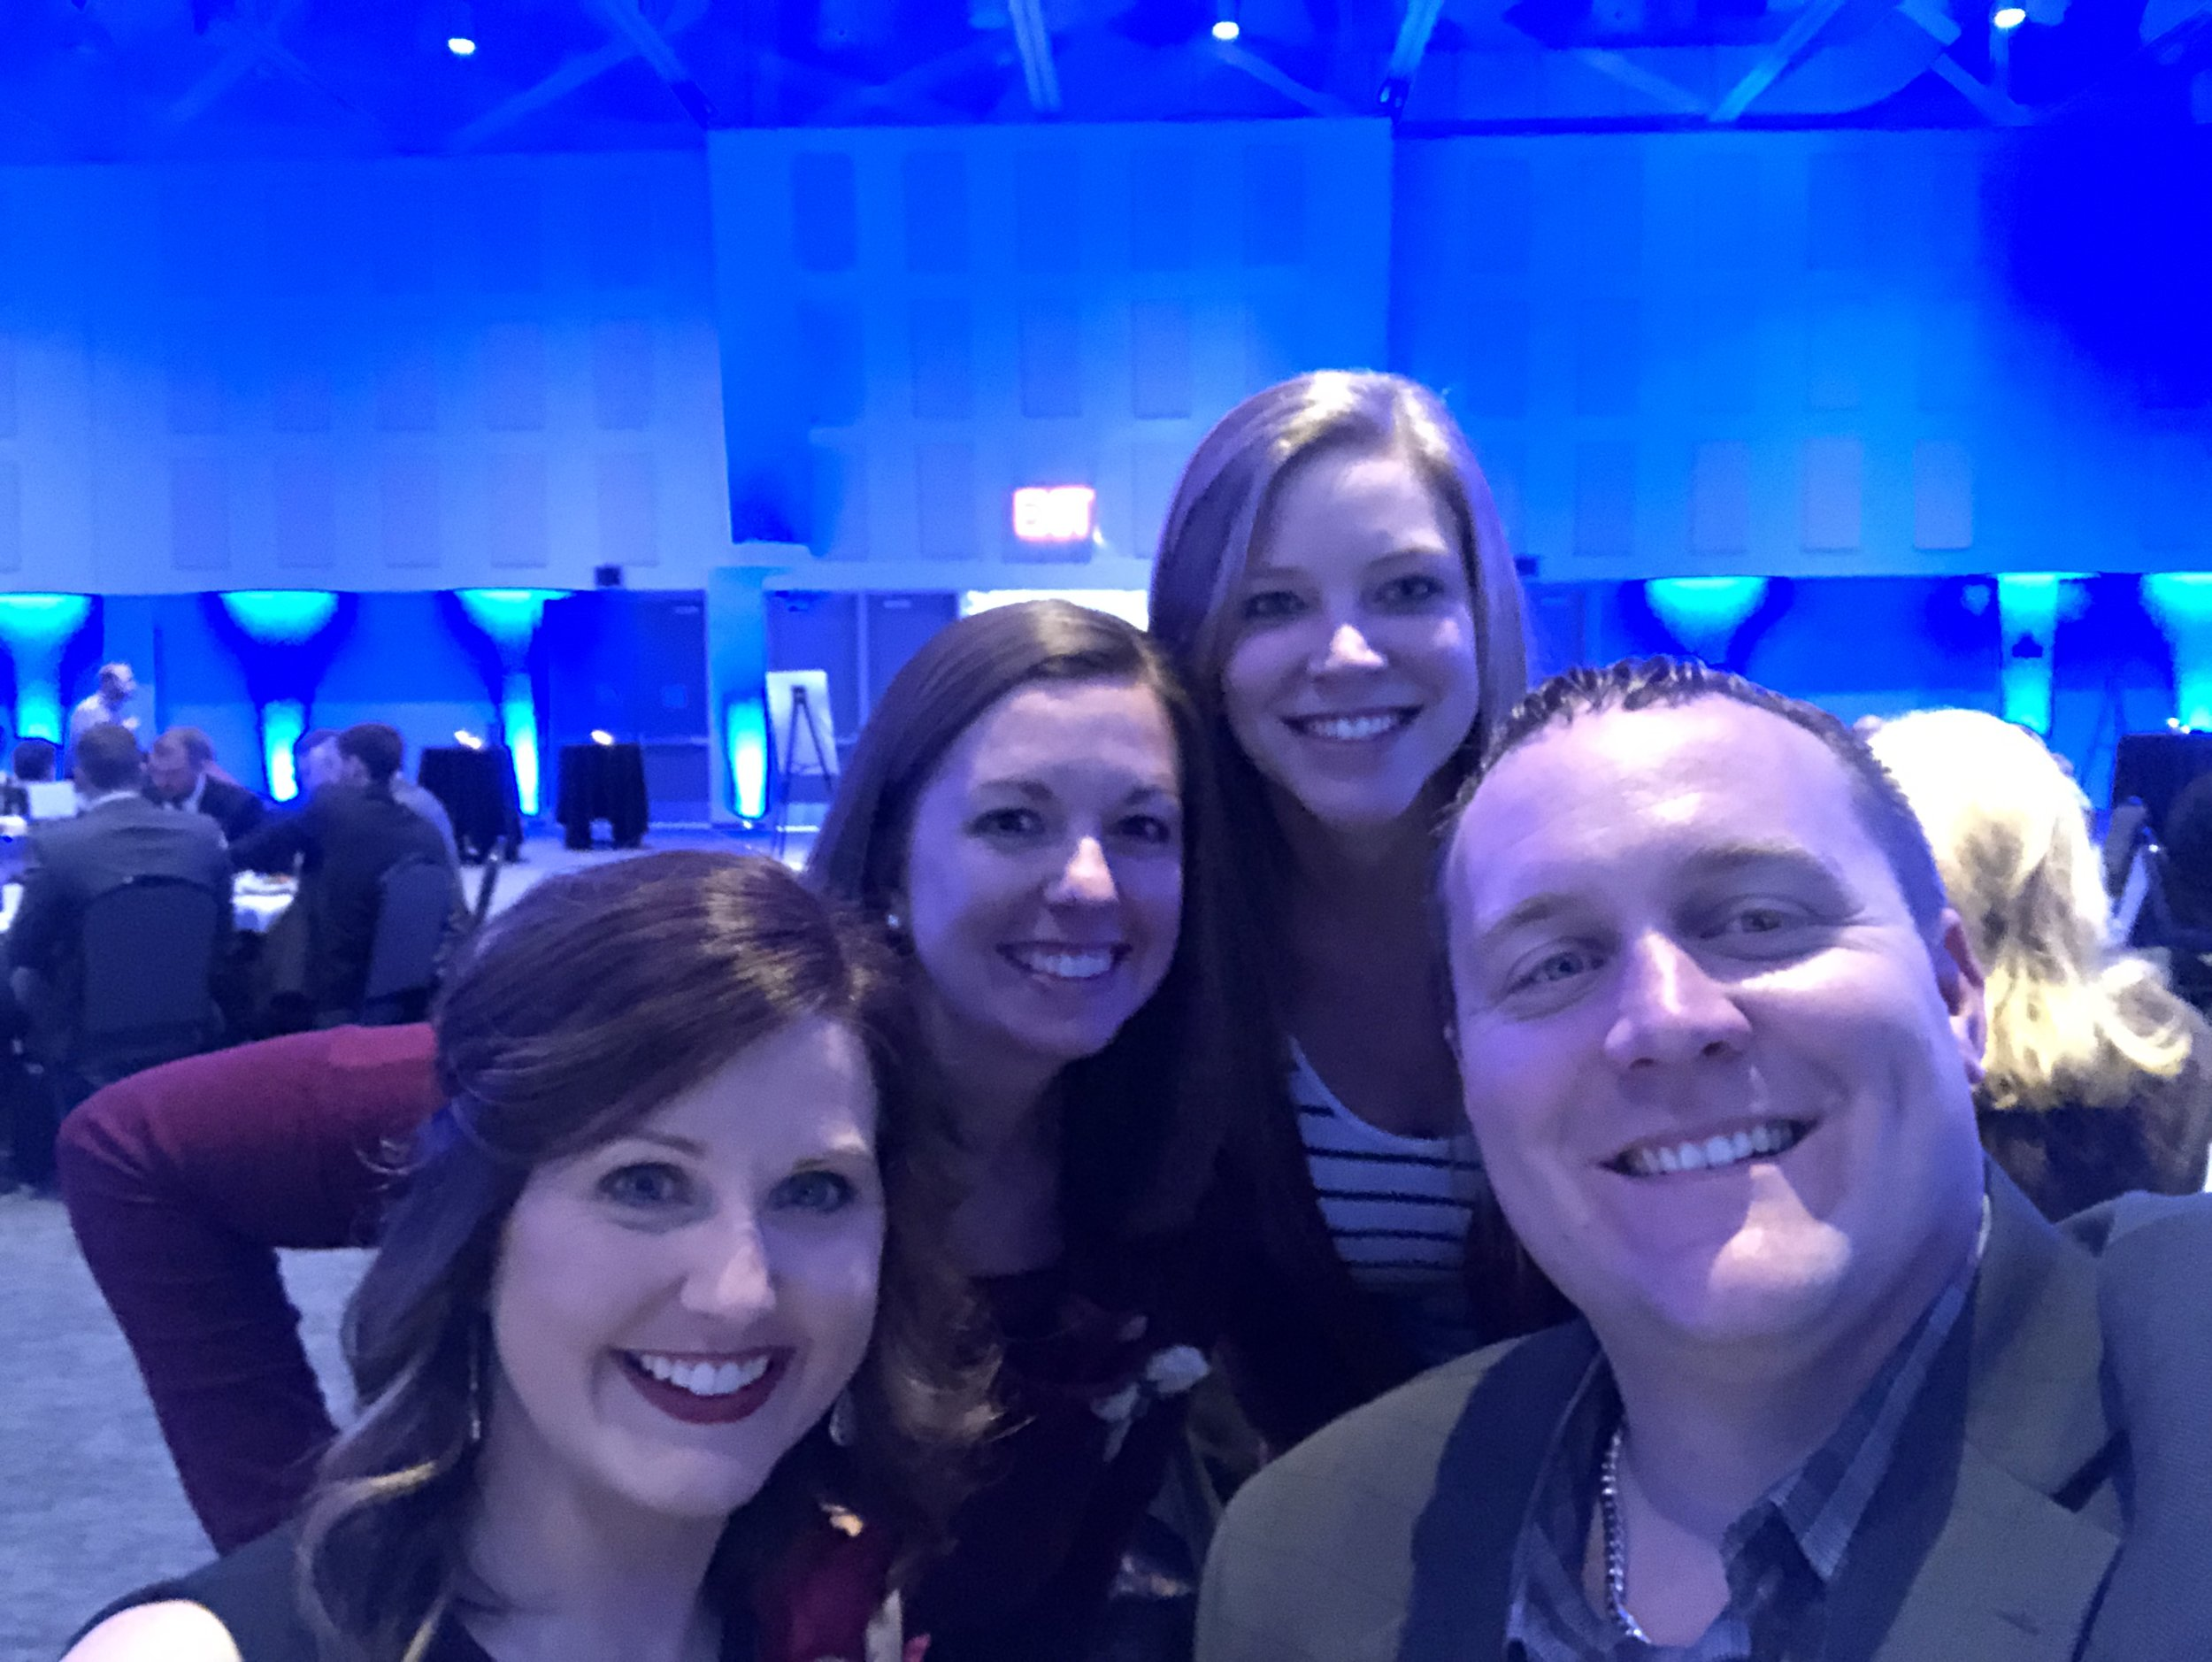 Back- Gabby and Haley from the Kore Cares Team Front- Last Year's Rising in Excellence award winner Steff Liston-Holtrop and the SME member who nominated Gabby for the award, Derek Kattenberg